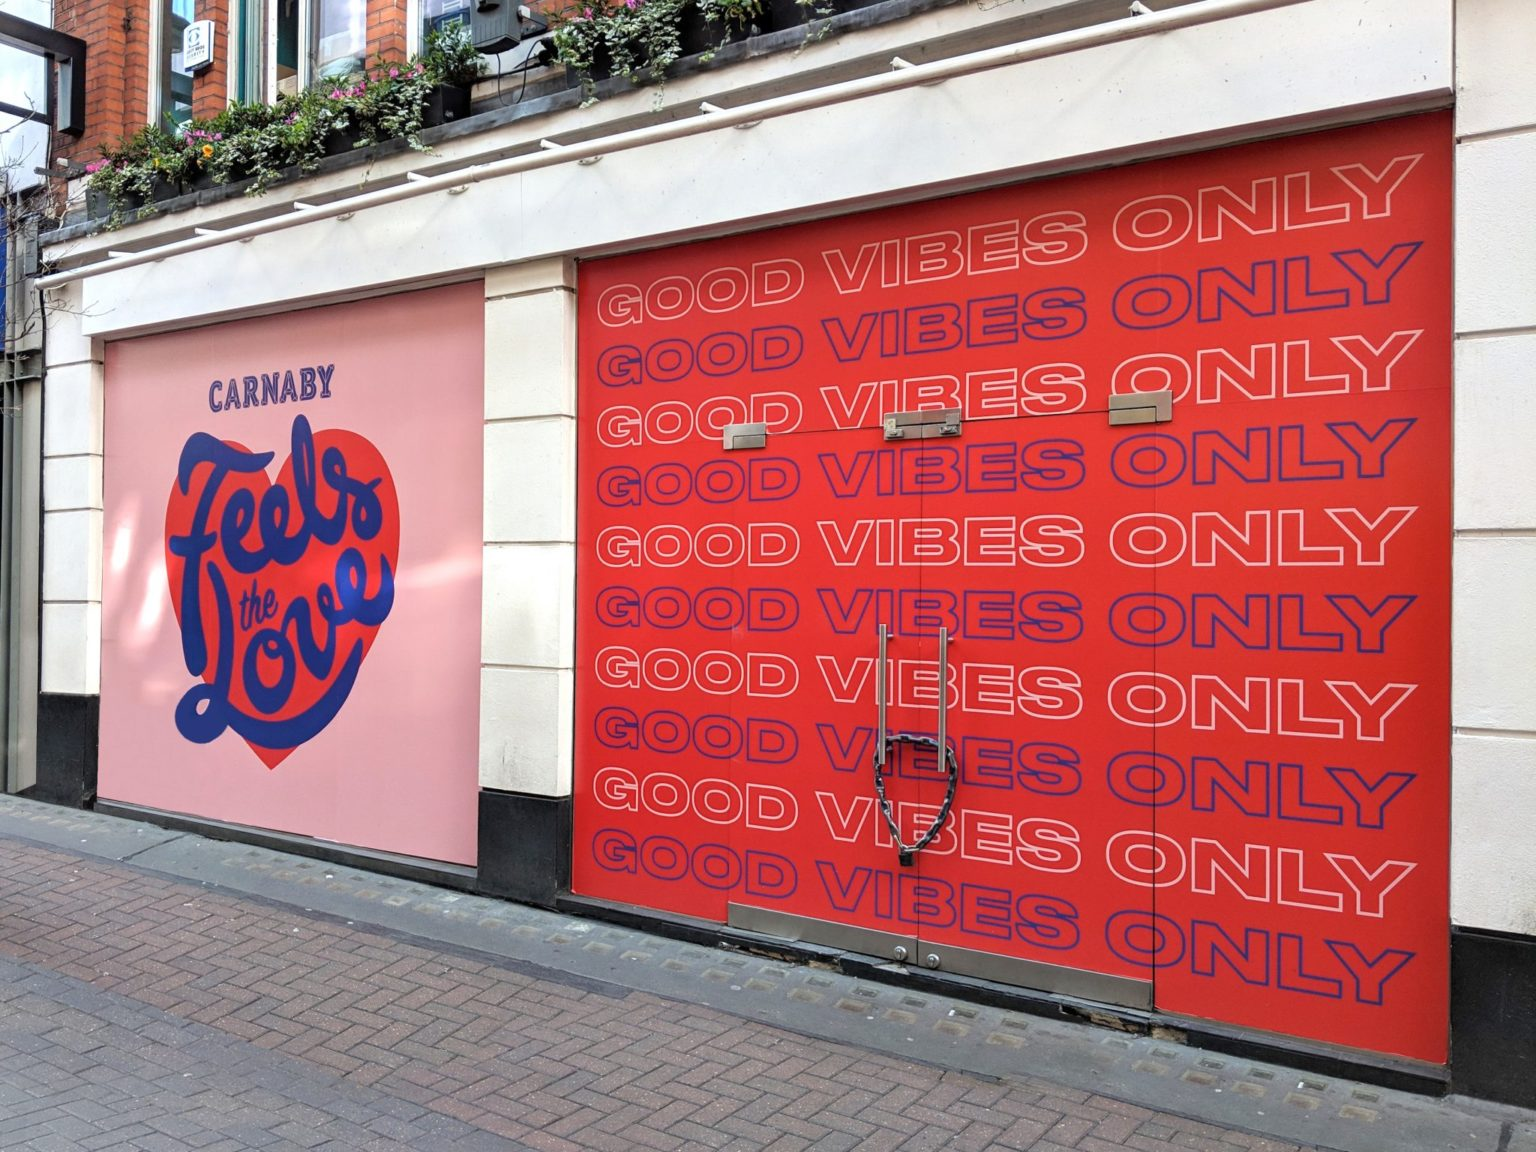 3 carnaby vinyls